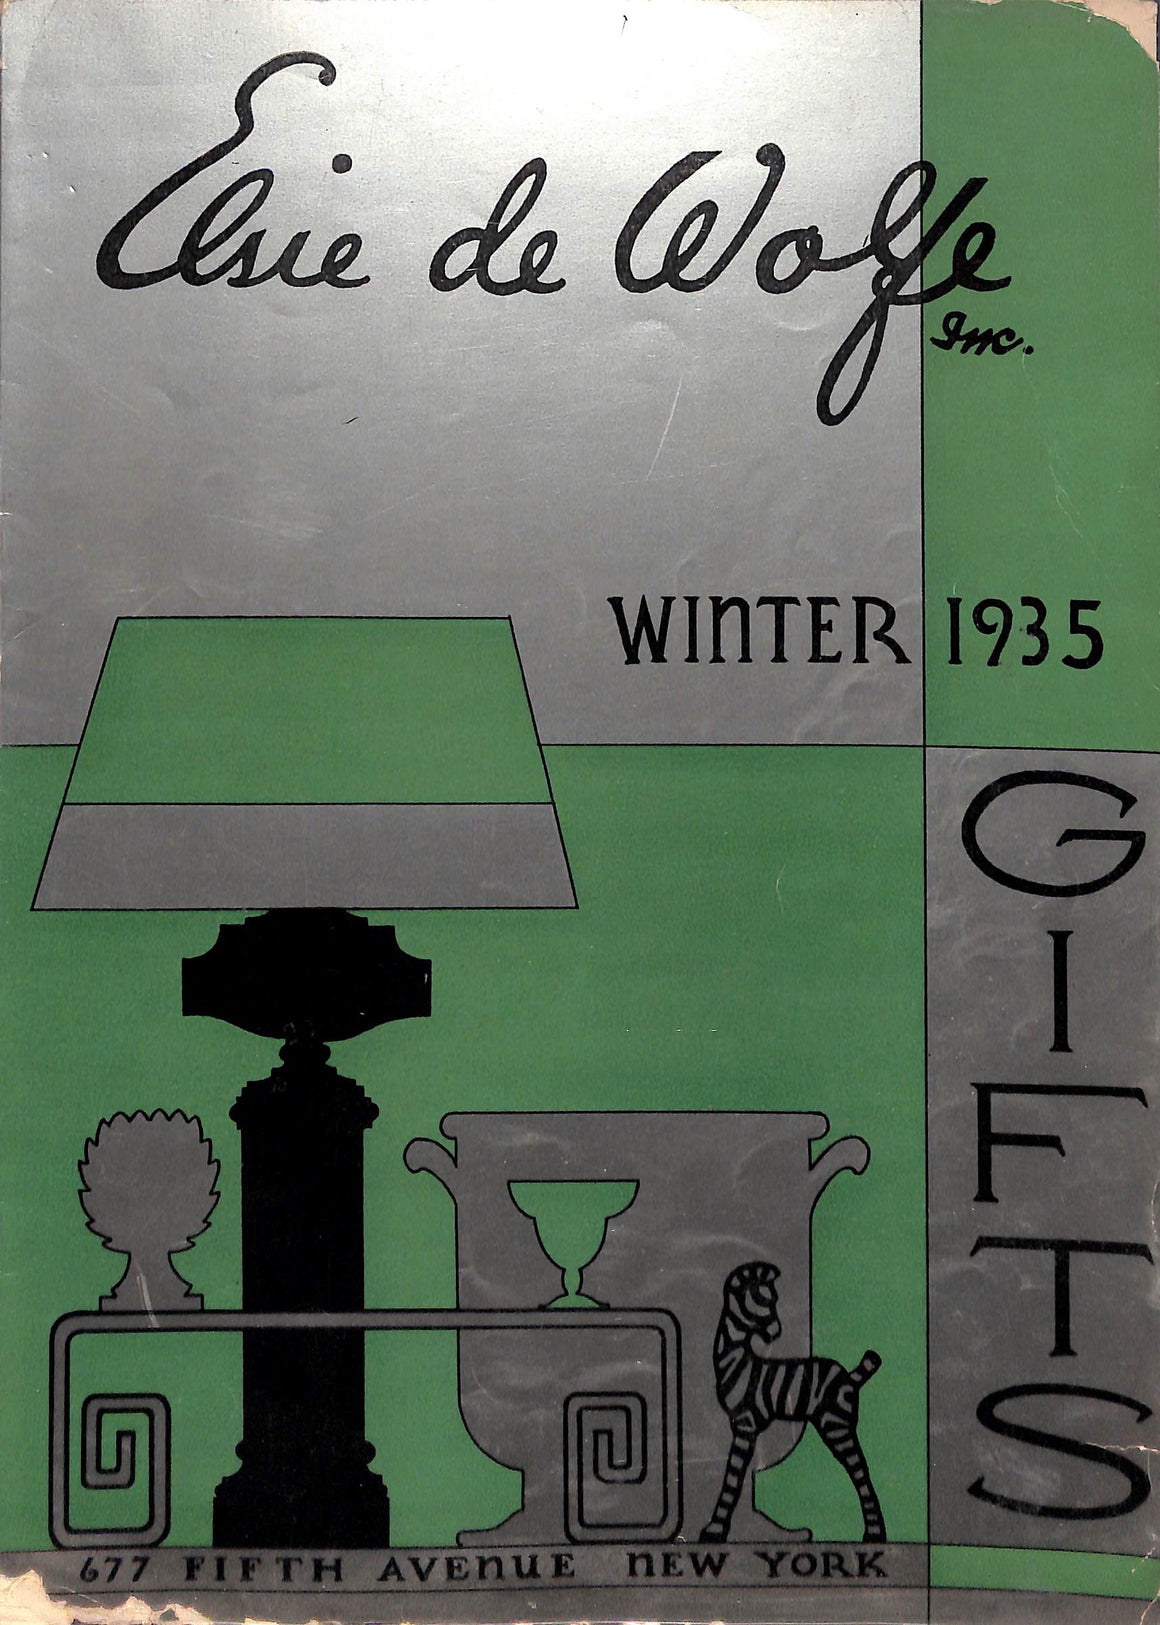 Elsie de Wolfe's Winter 35 Journal